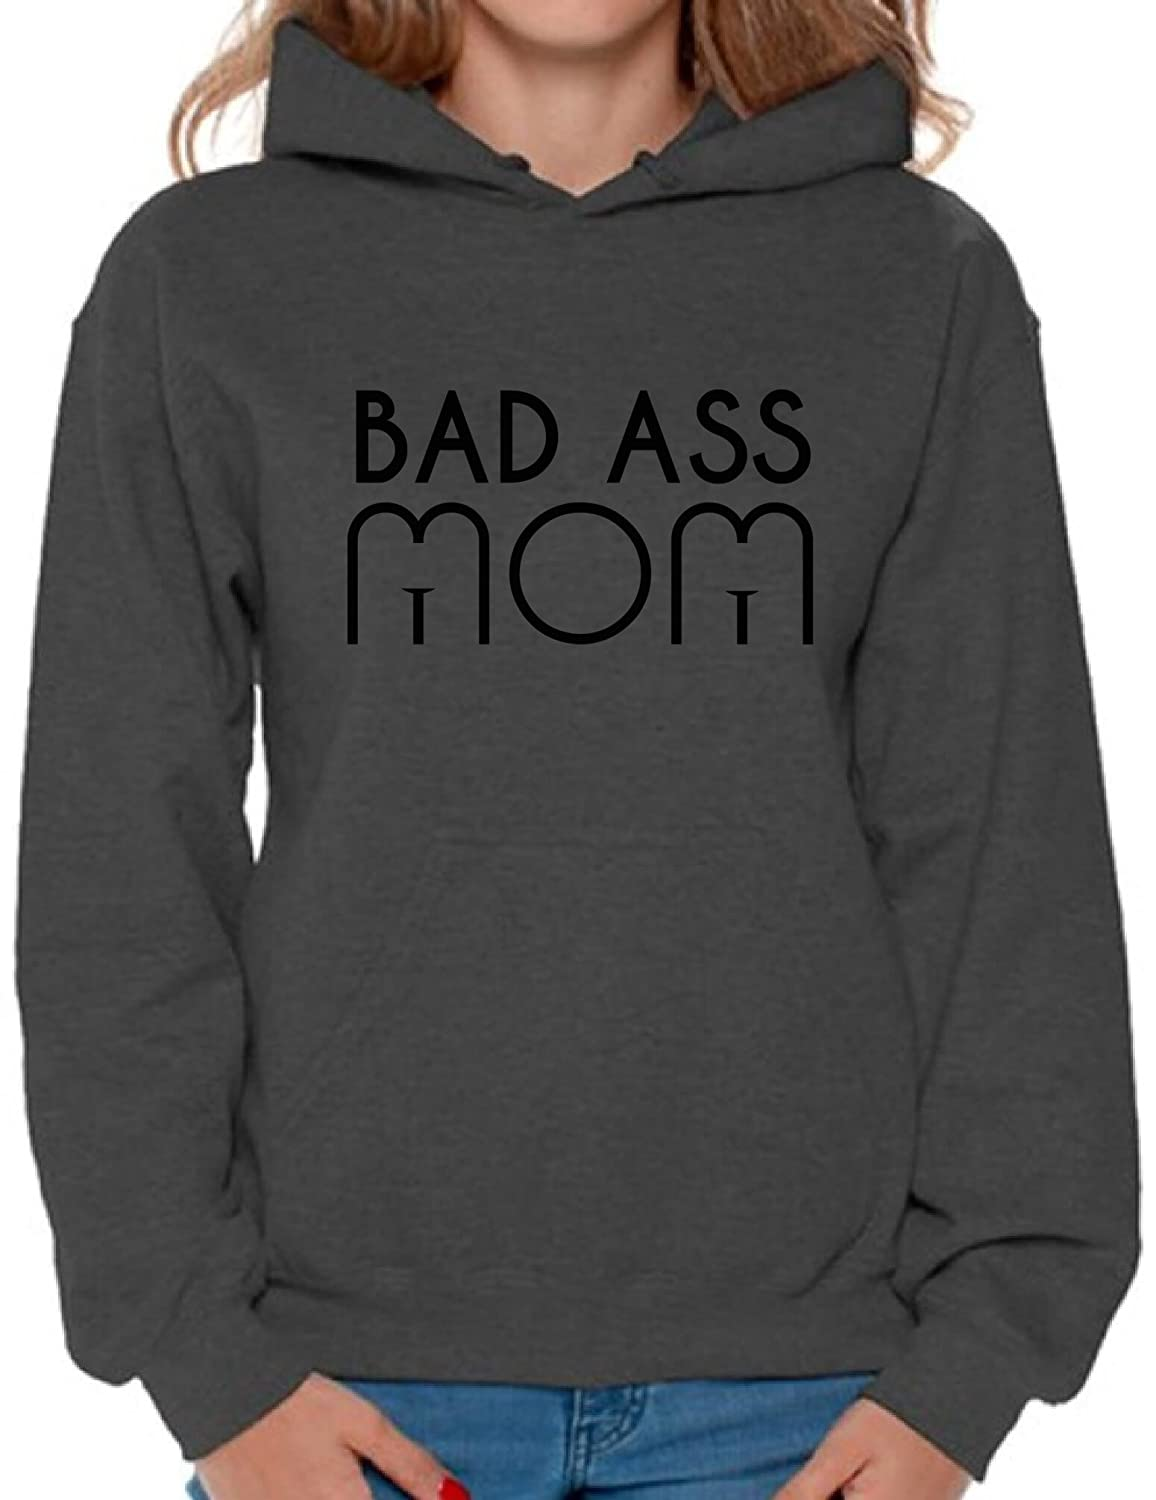 c585838d7 Awkward Styles Women's Bad Ass Mom Funny Graphic Hoodie Tops ...